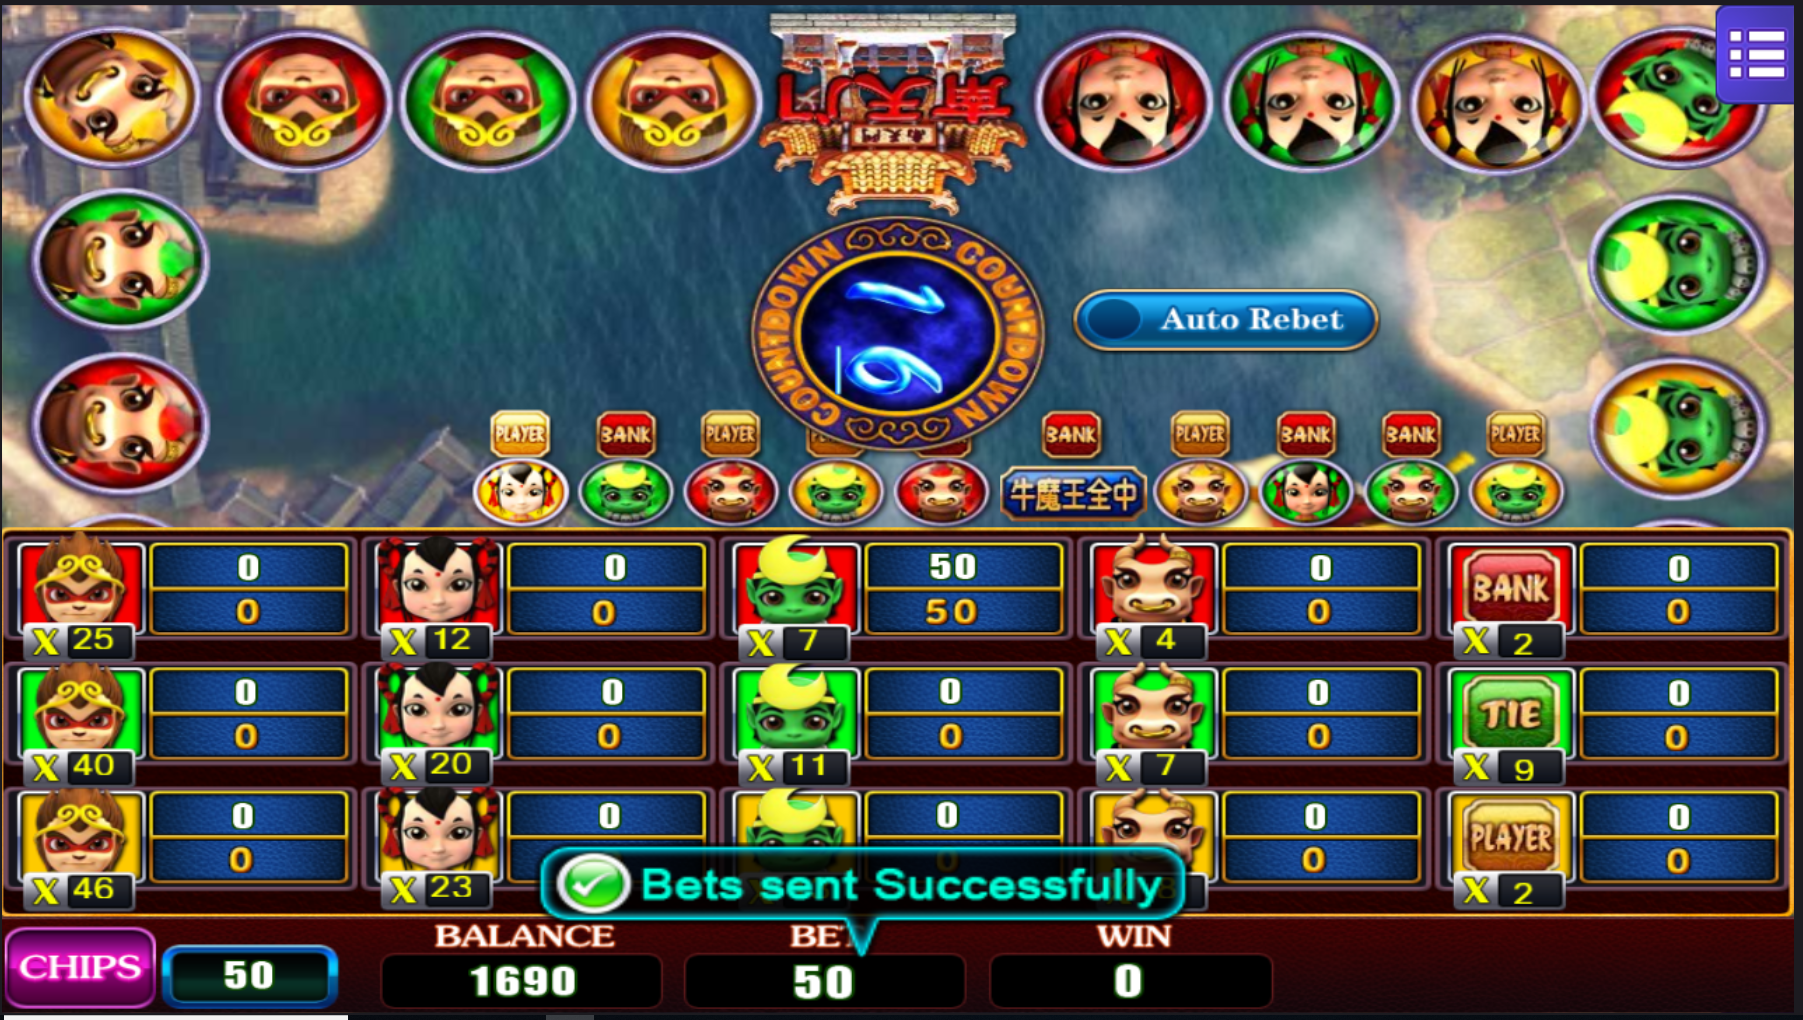 Overview of mobile casino games